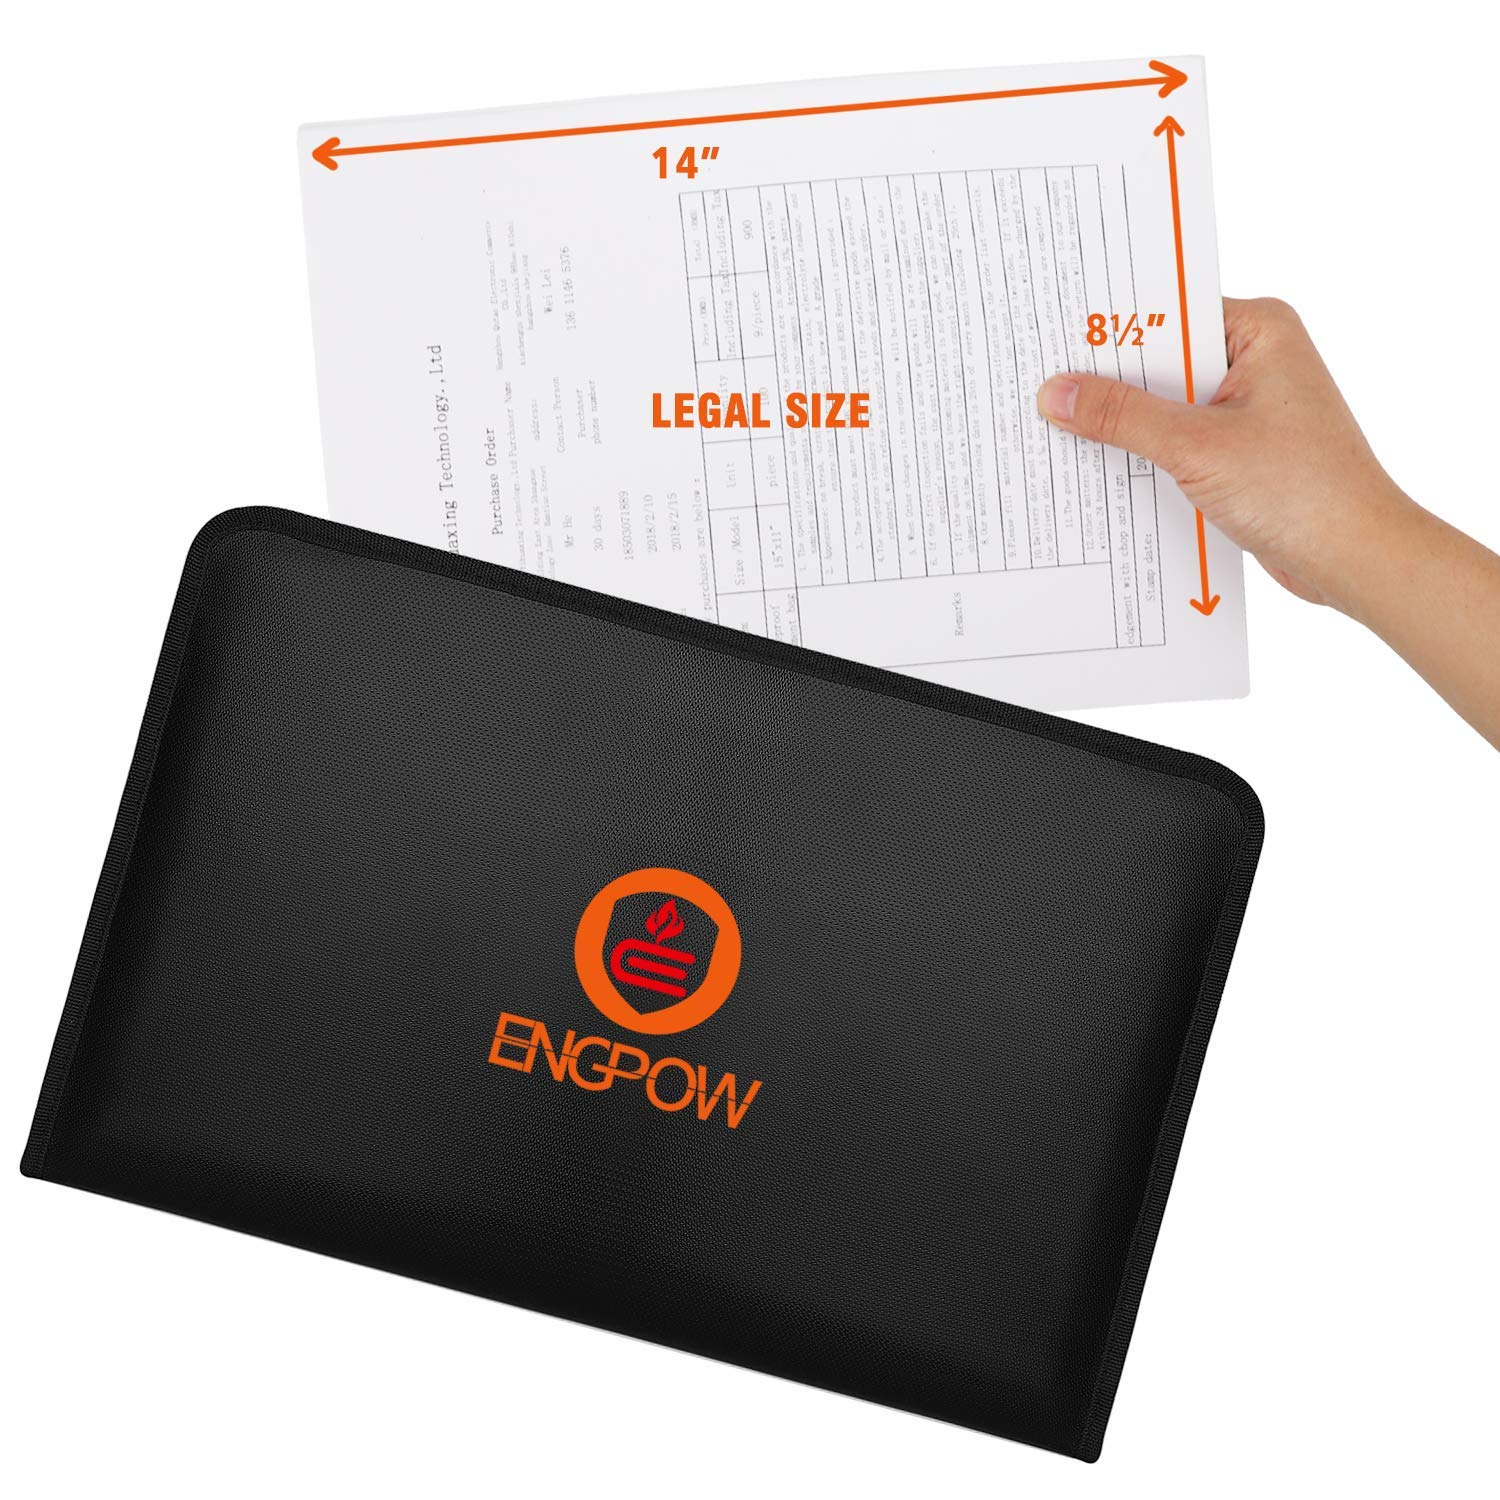 Legal Size Expanding File Folder Important Document Organizer Fireproof Document Bag with 13 Pockets,Color Labels,Non-Itchy Silicone Coated Portable File Wallet Large Capacity 16 x 10.6